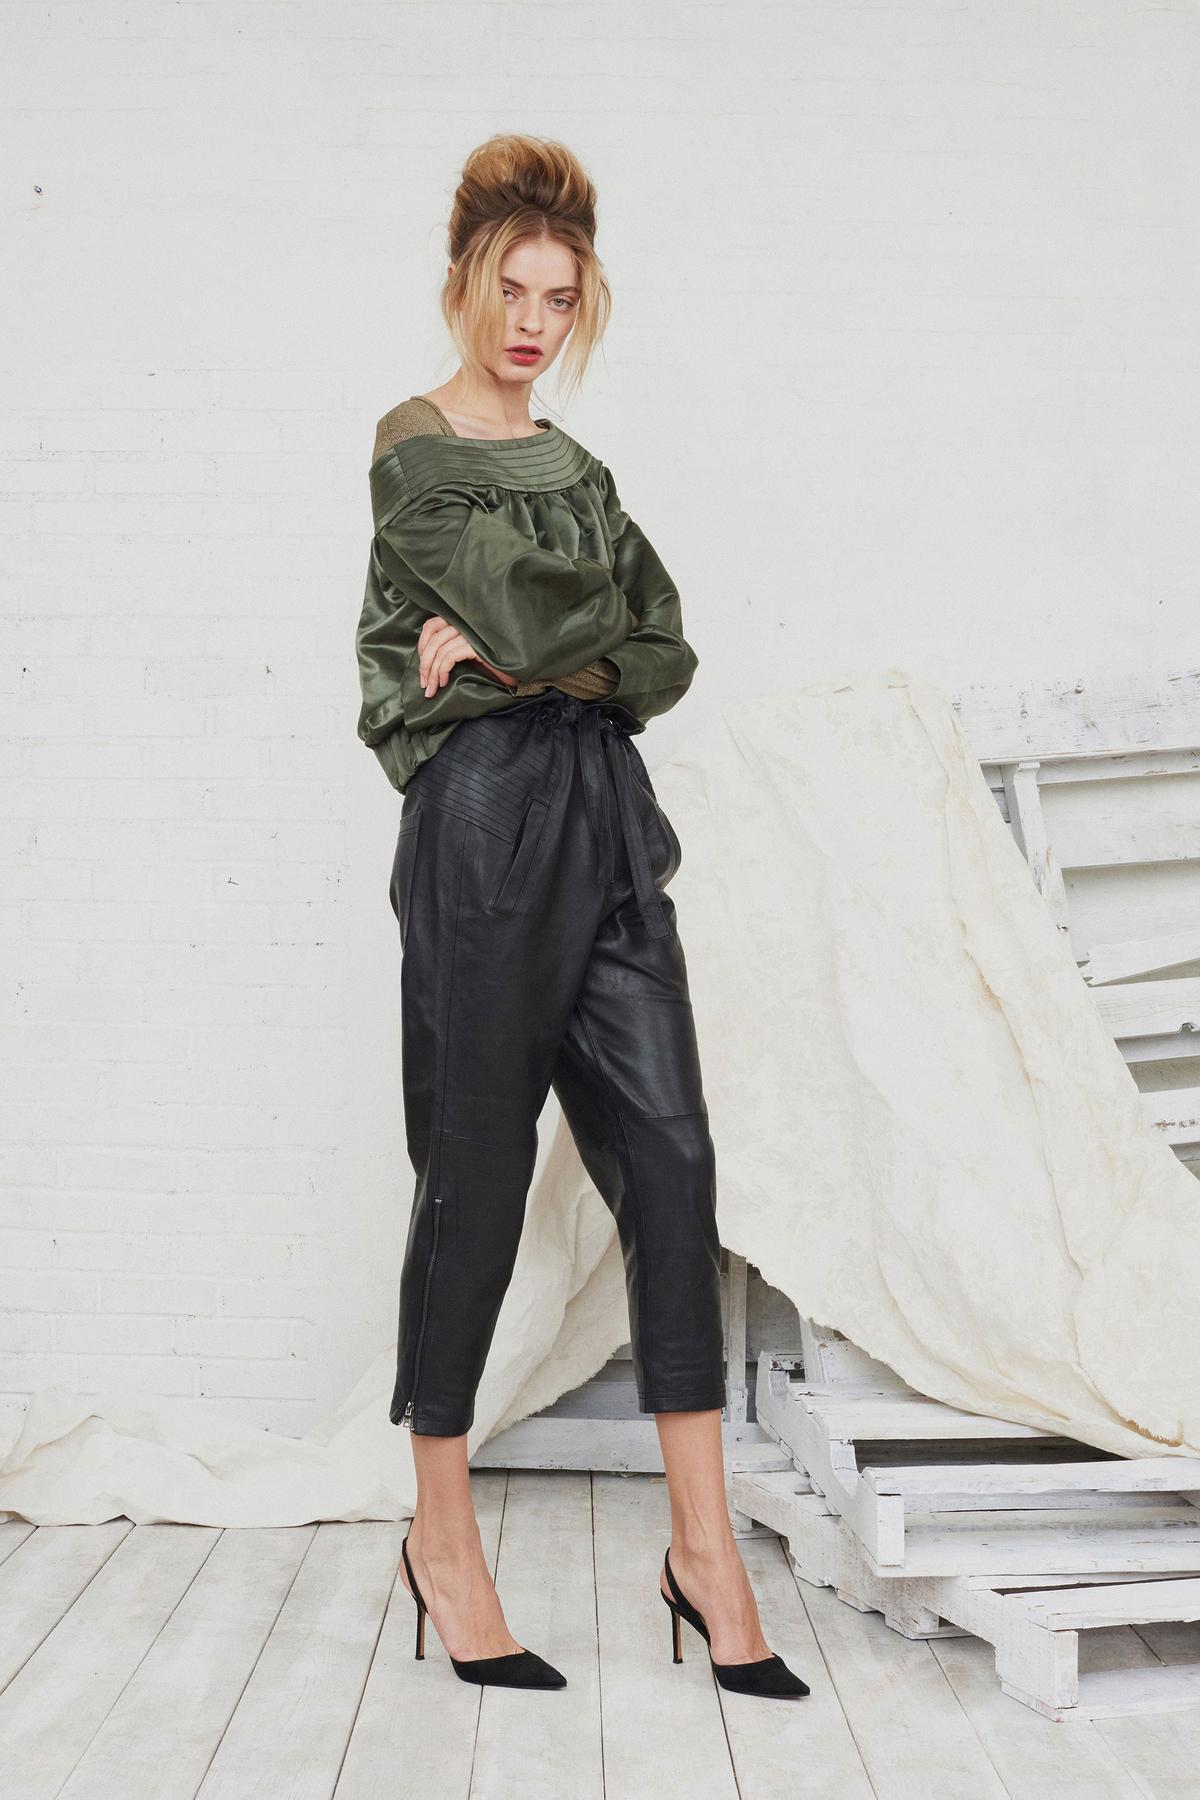 satin army green blouse, leather pants, black heels